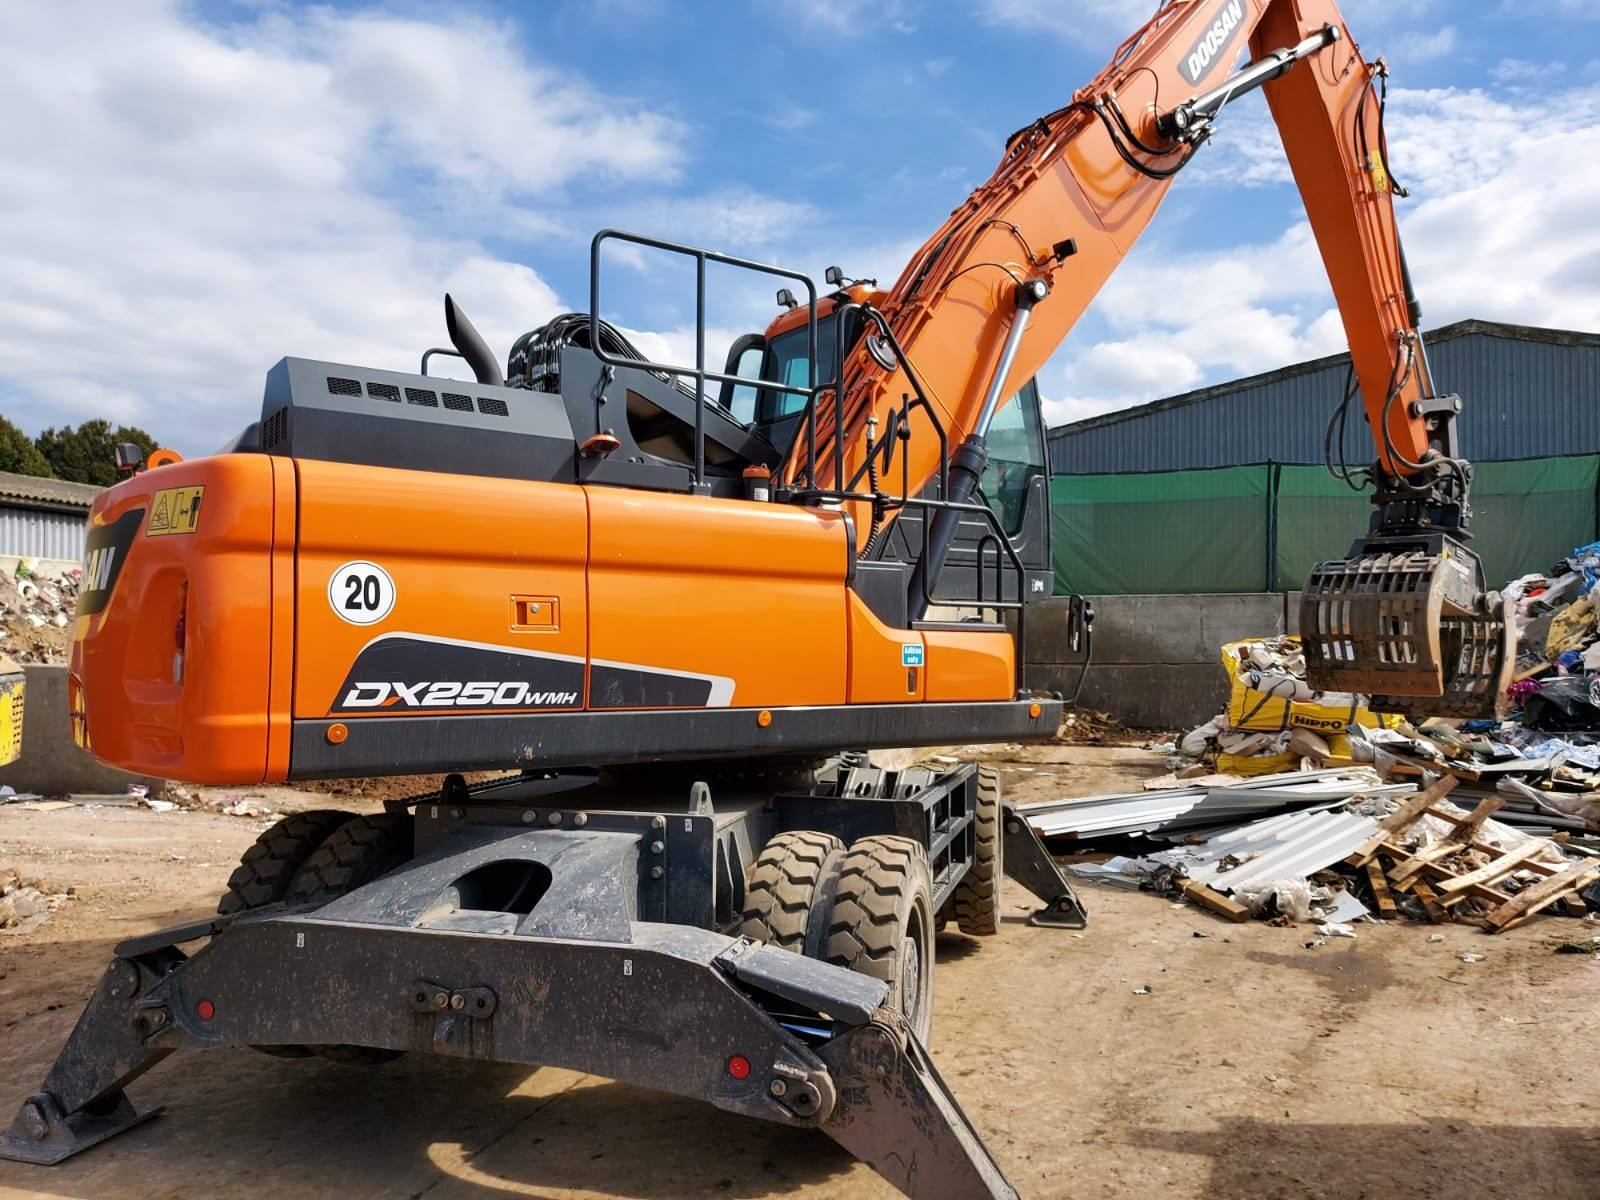 Doosan Wheel Excavators